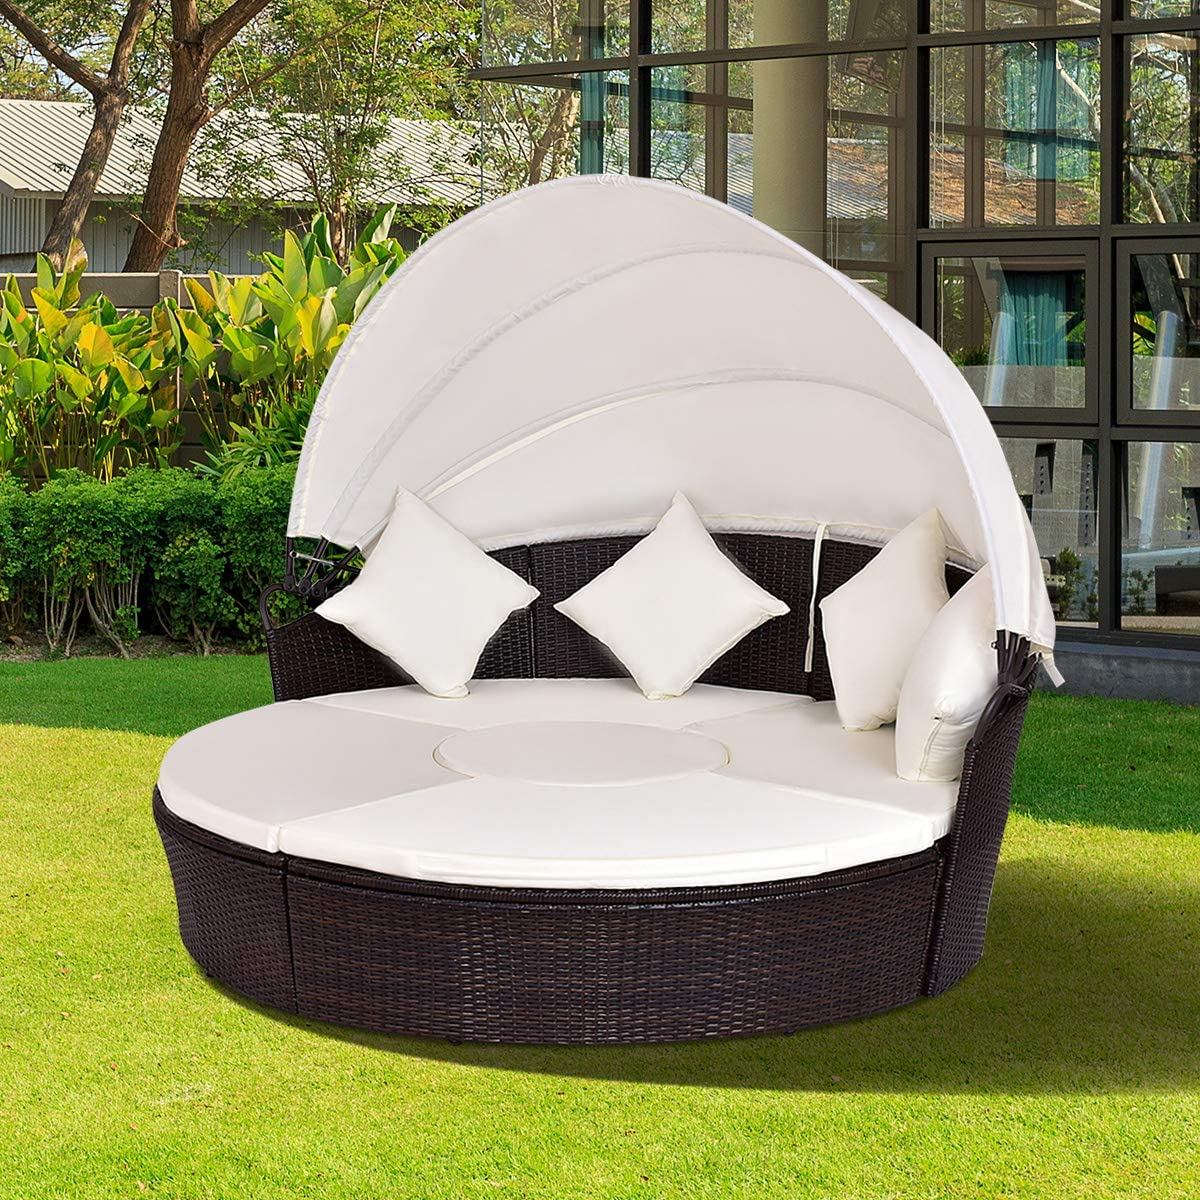 Tangkula Patio Daybed, 73 Diameter Outdoor Lawn Backyard Poolside Garden Round Sofas with Retractable Canopy, Wicker Rattan Round Daybed, Seating Separates Cushioned Seats Beige